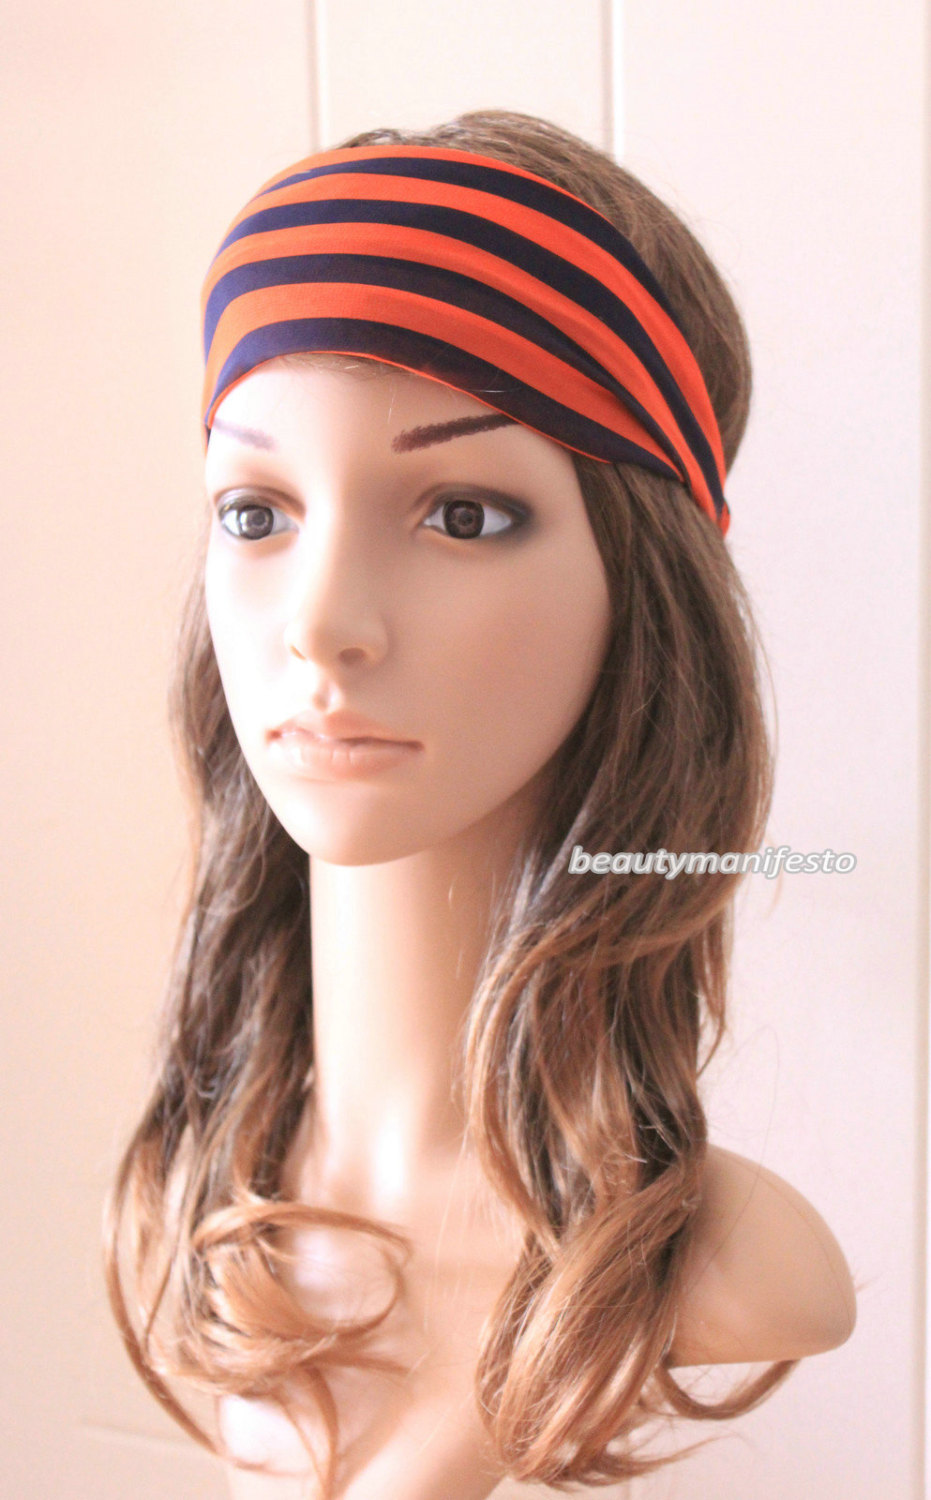 Turban headband running twist headband orange blue stripe yoga headband wide headband women's hair accessory girls headband